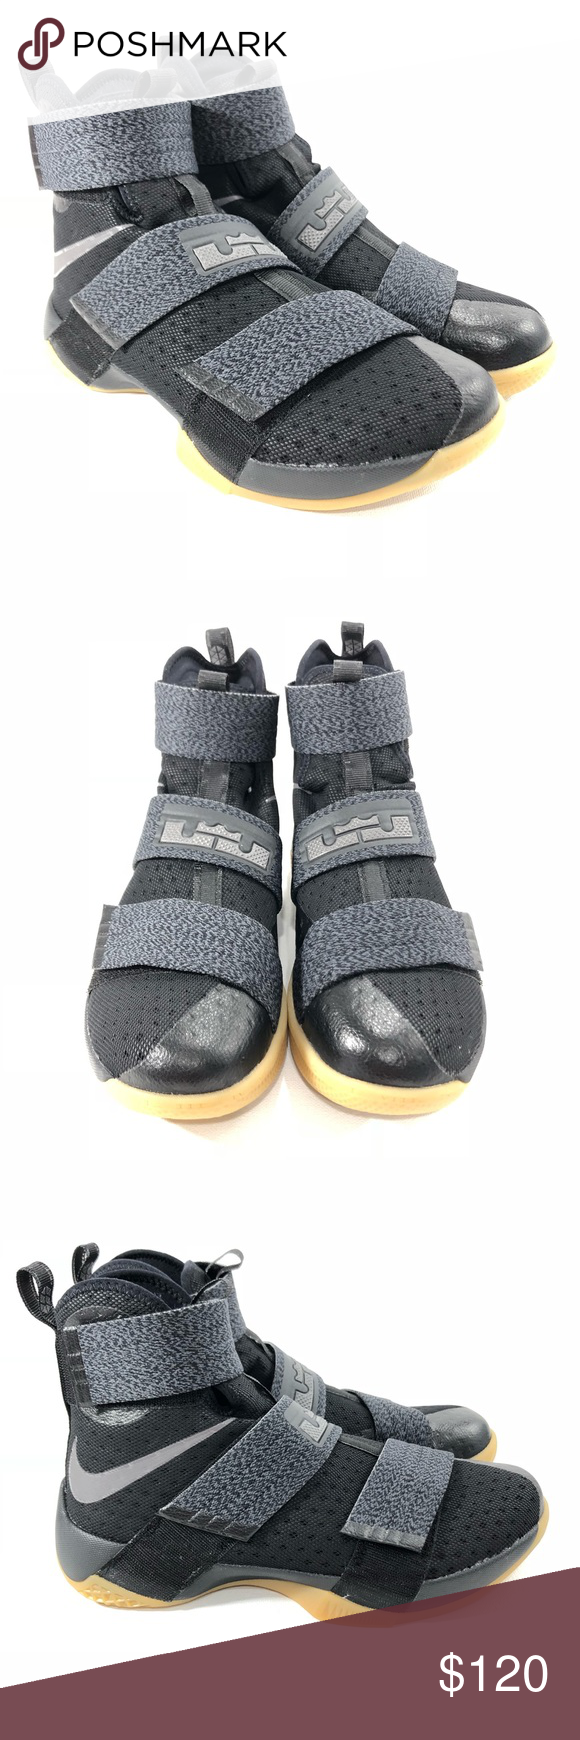 fe3810c0371 Nike LeBron Soldier 10 CAVS Final Game 7 SFG Nike LeBron Soldier 10 Black  Gum CAVS Final Game 7 SFG Champion Style  844378-009 Size  9 NO BOX  INCLUDED Nike ...